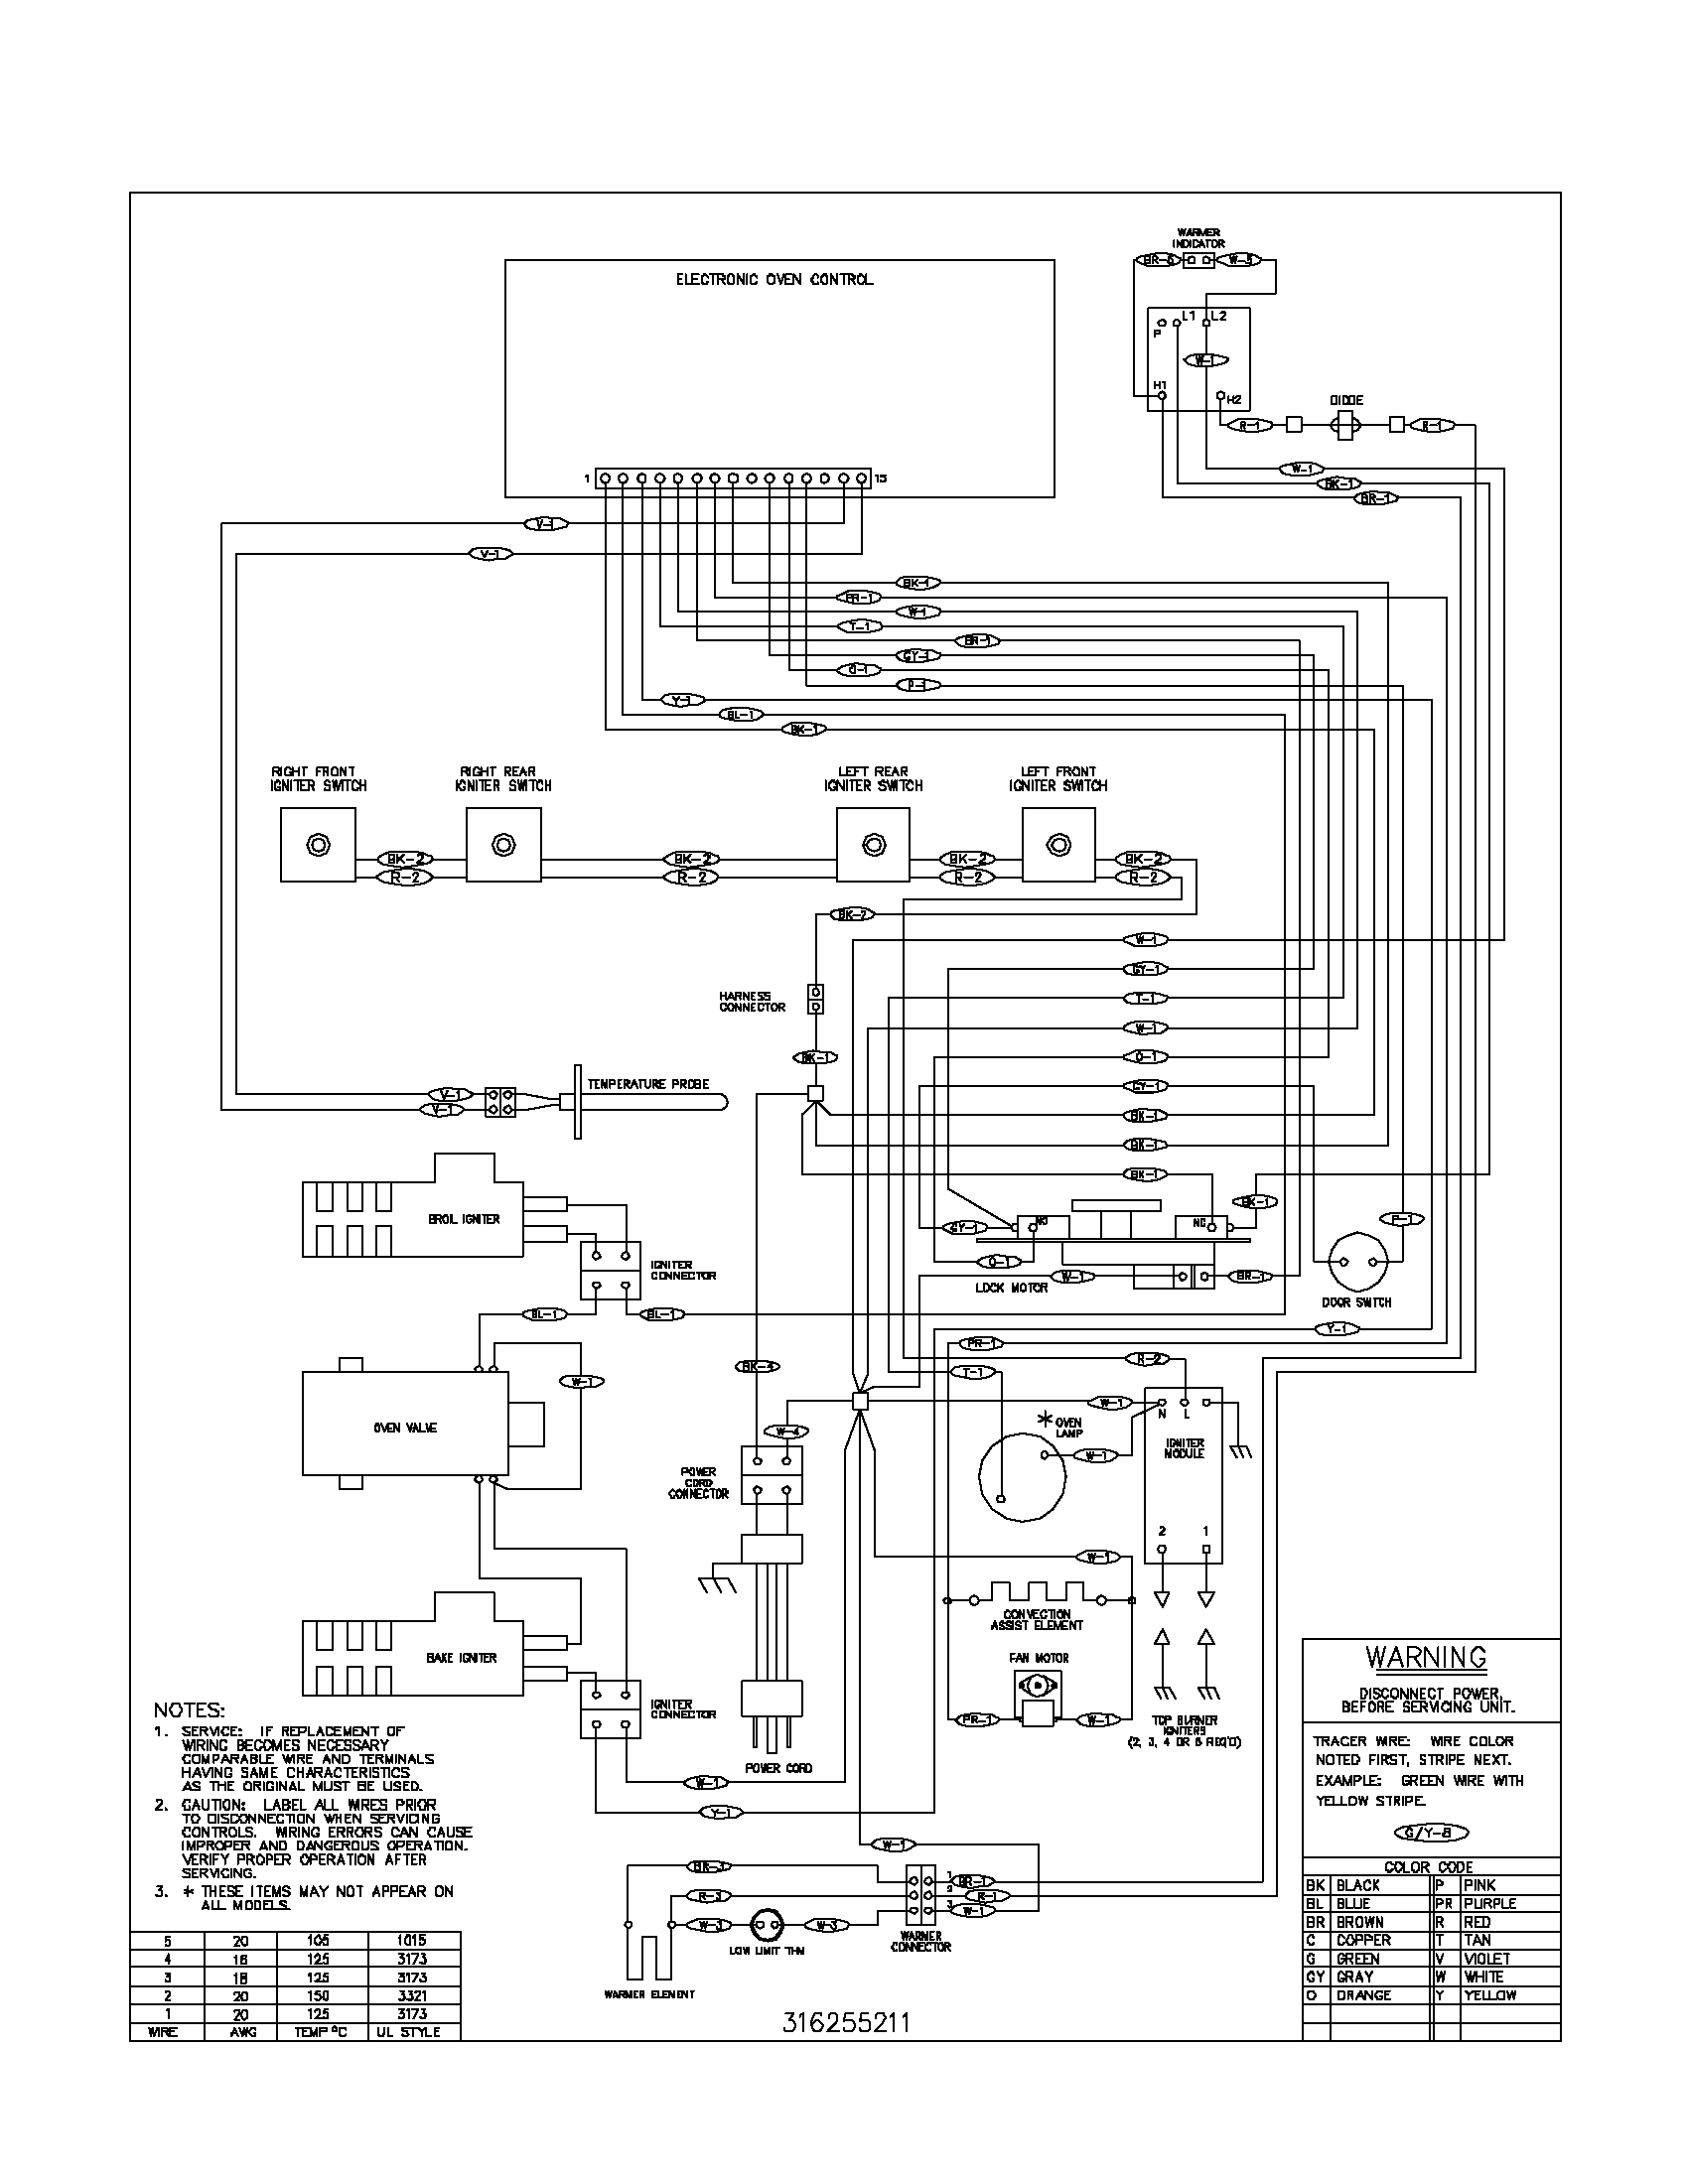 Whirlpool Washing Machine Wiring Diagram Page 2 Washer Motor Diagrams Frigidaire Plgf389ccb Gas Range Timer Stove Clocks And Appliance Rh Appliancetimers Com